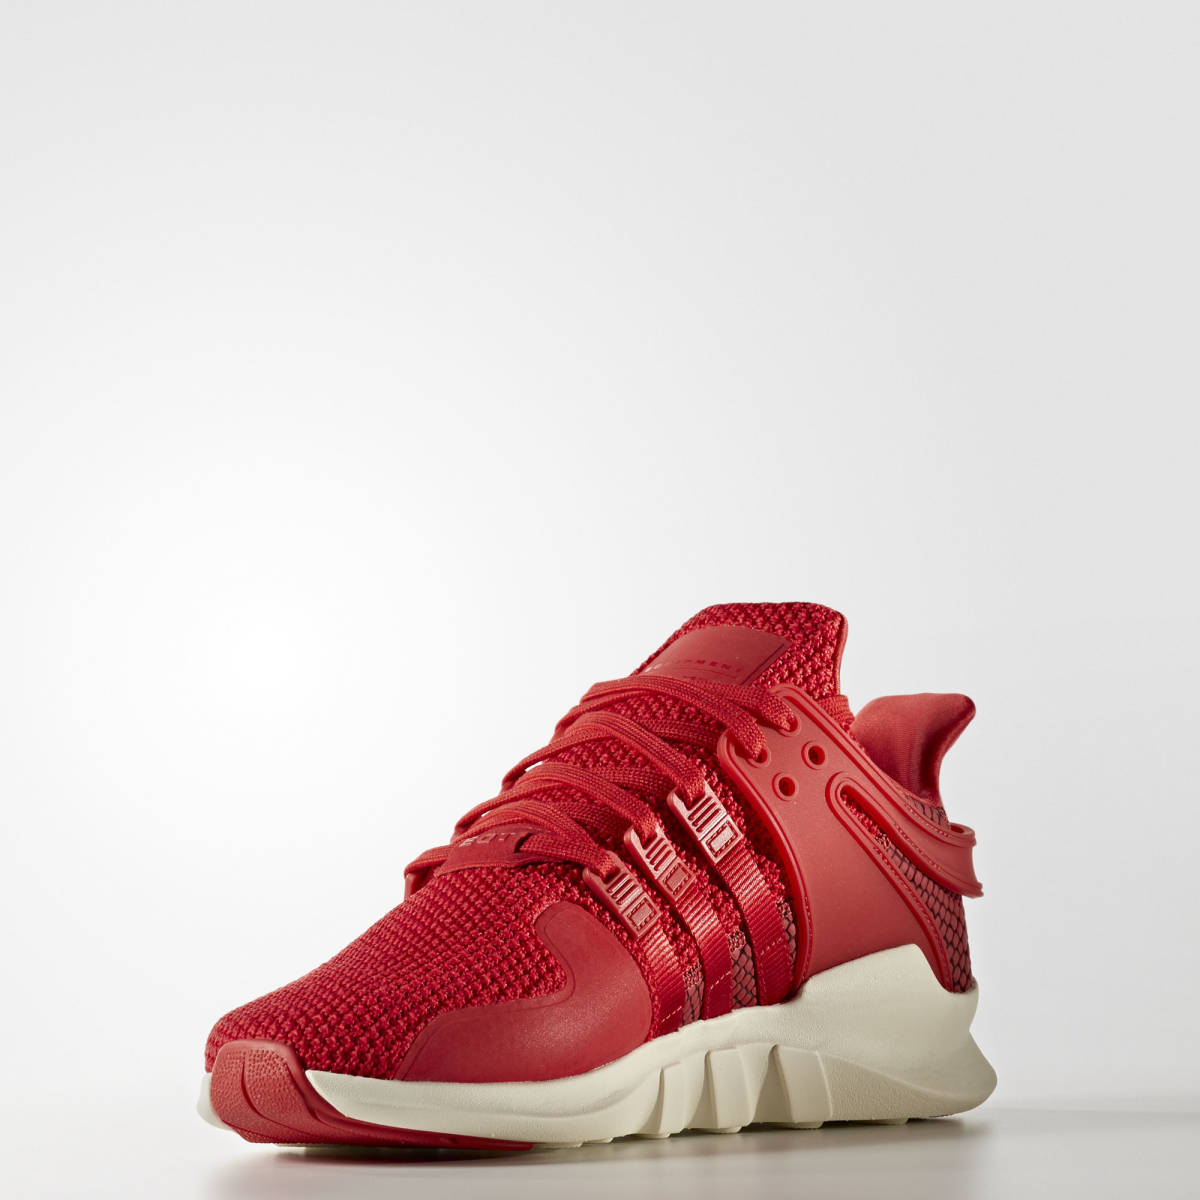 Support In Originals Eqt Adv Adidas Rot By9588Everysize PZikuTOX